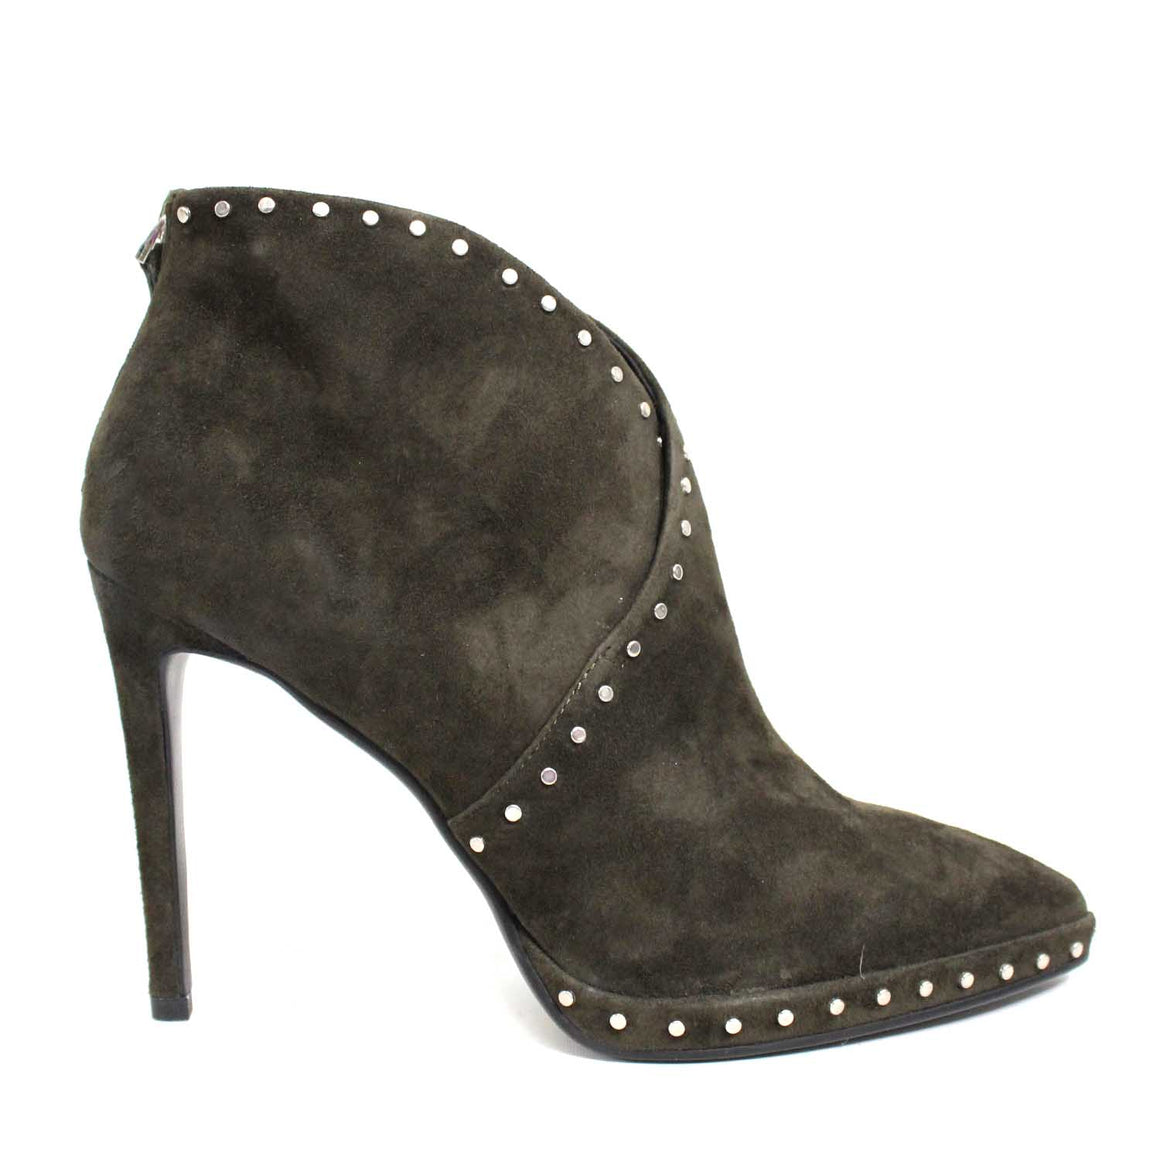 LOLA CRUZ OLIVE STUDDED BOOTIES